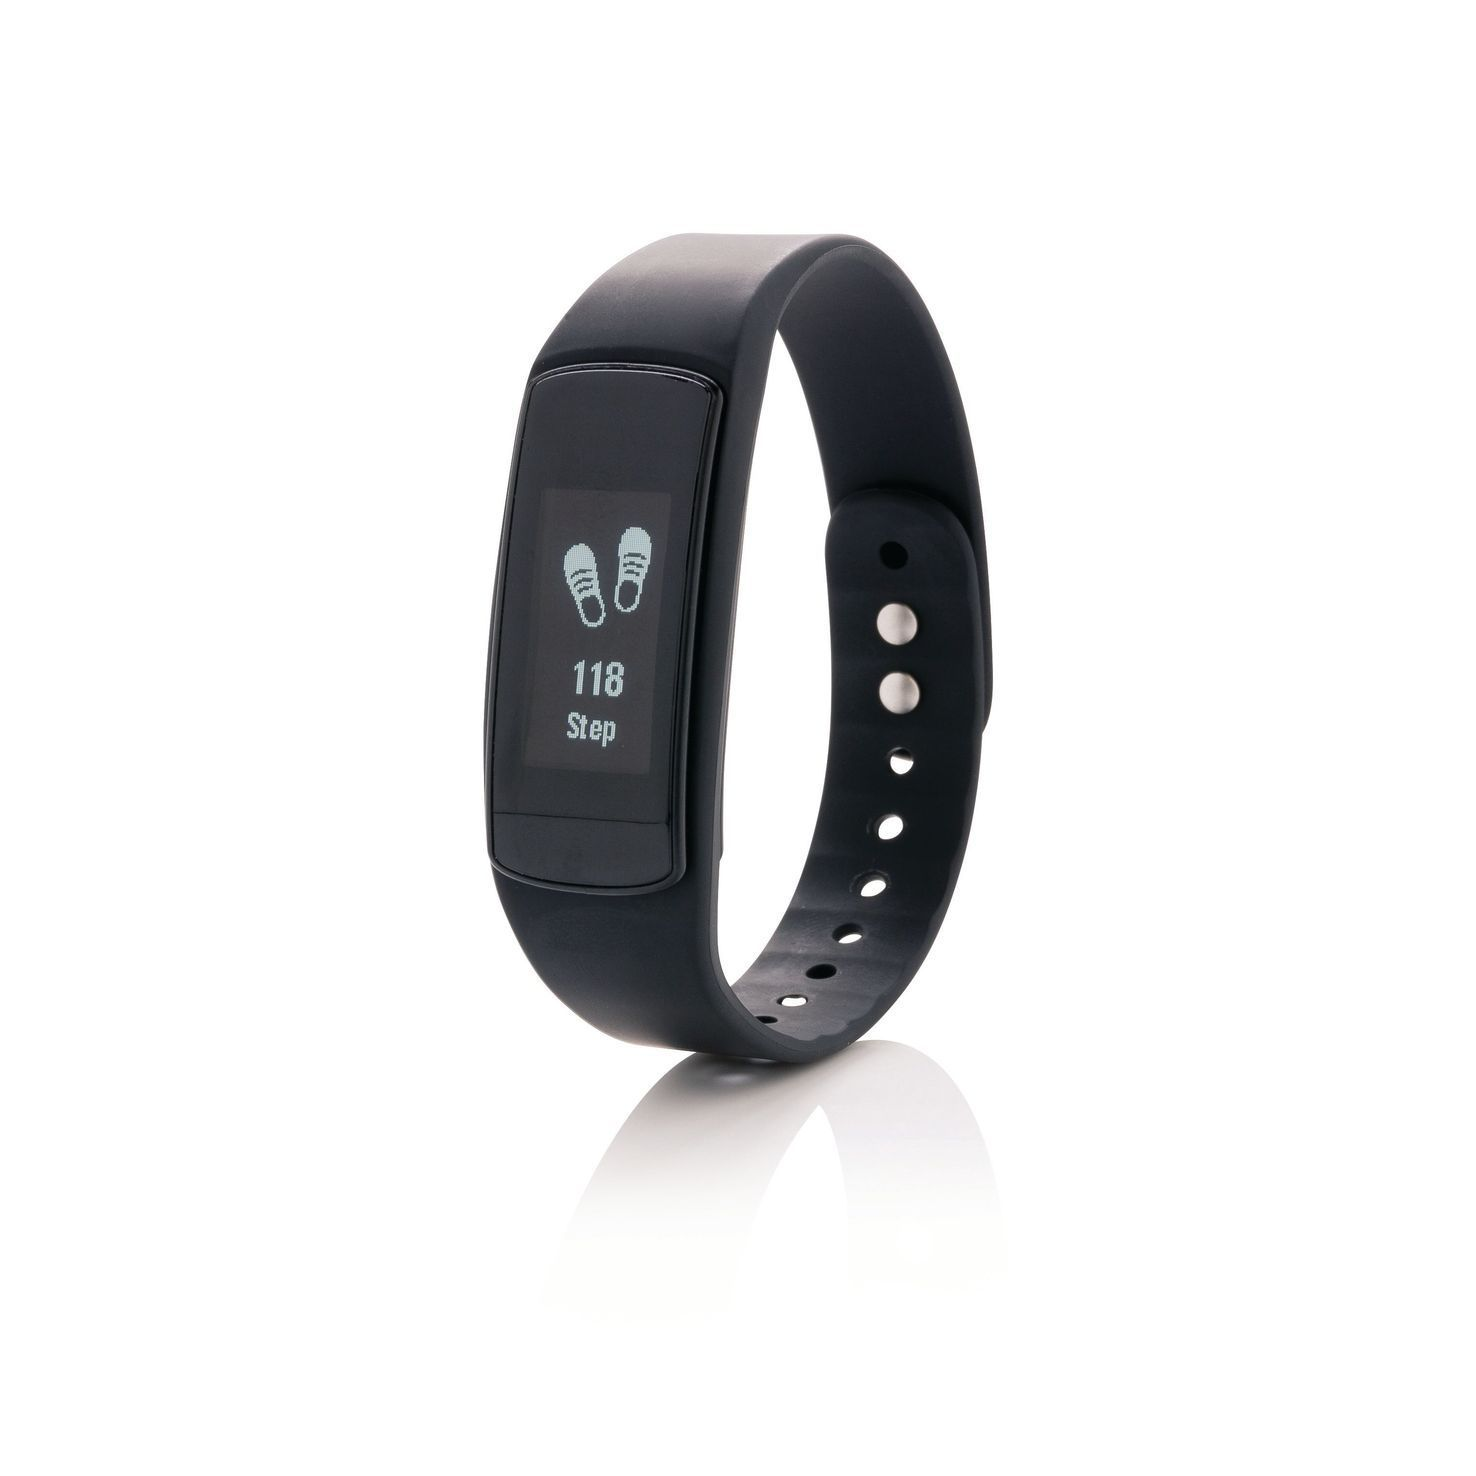 Zwarte Activity tracker | Touchscreen